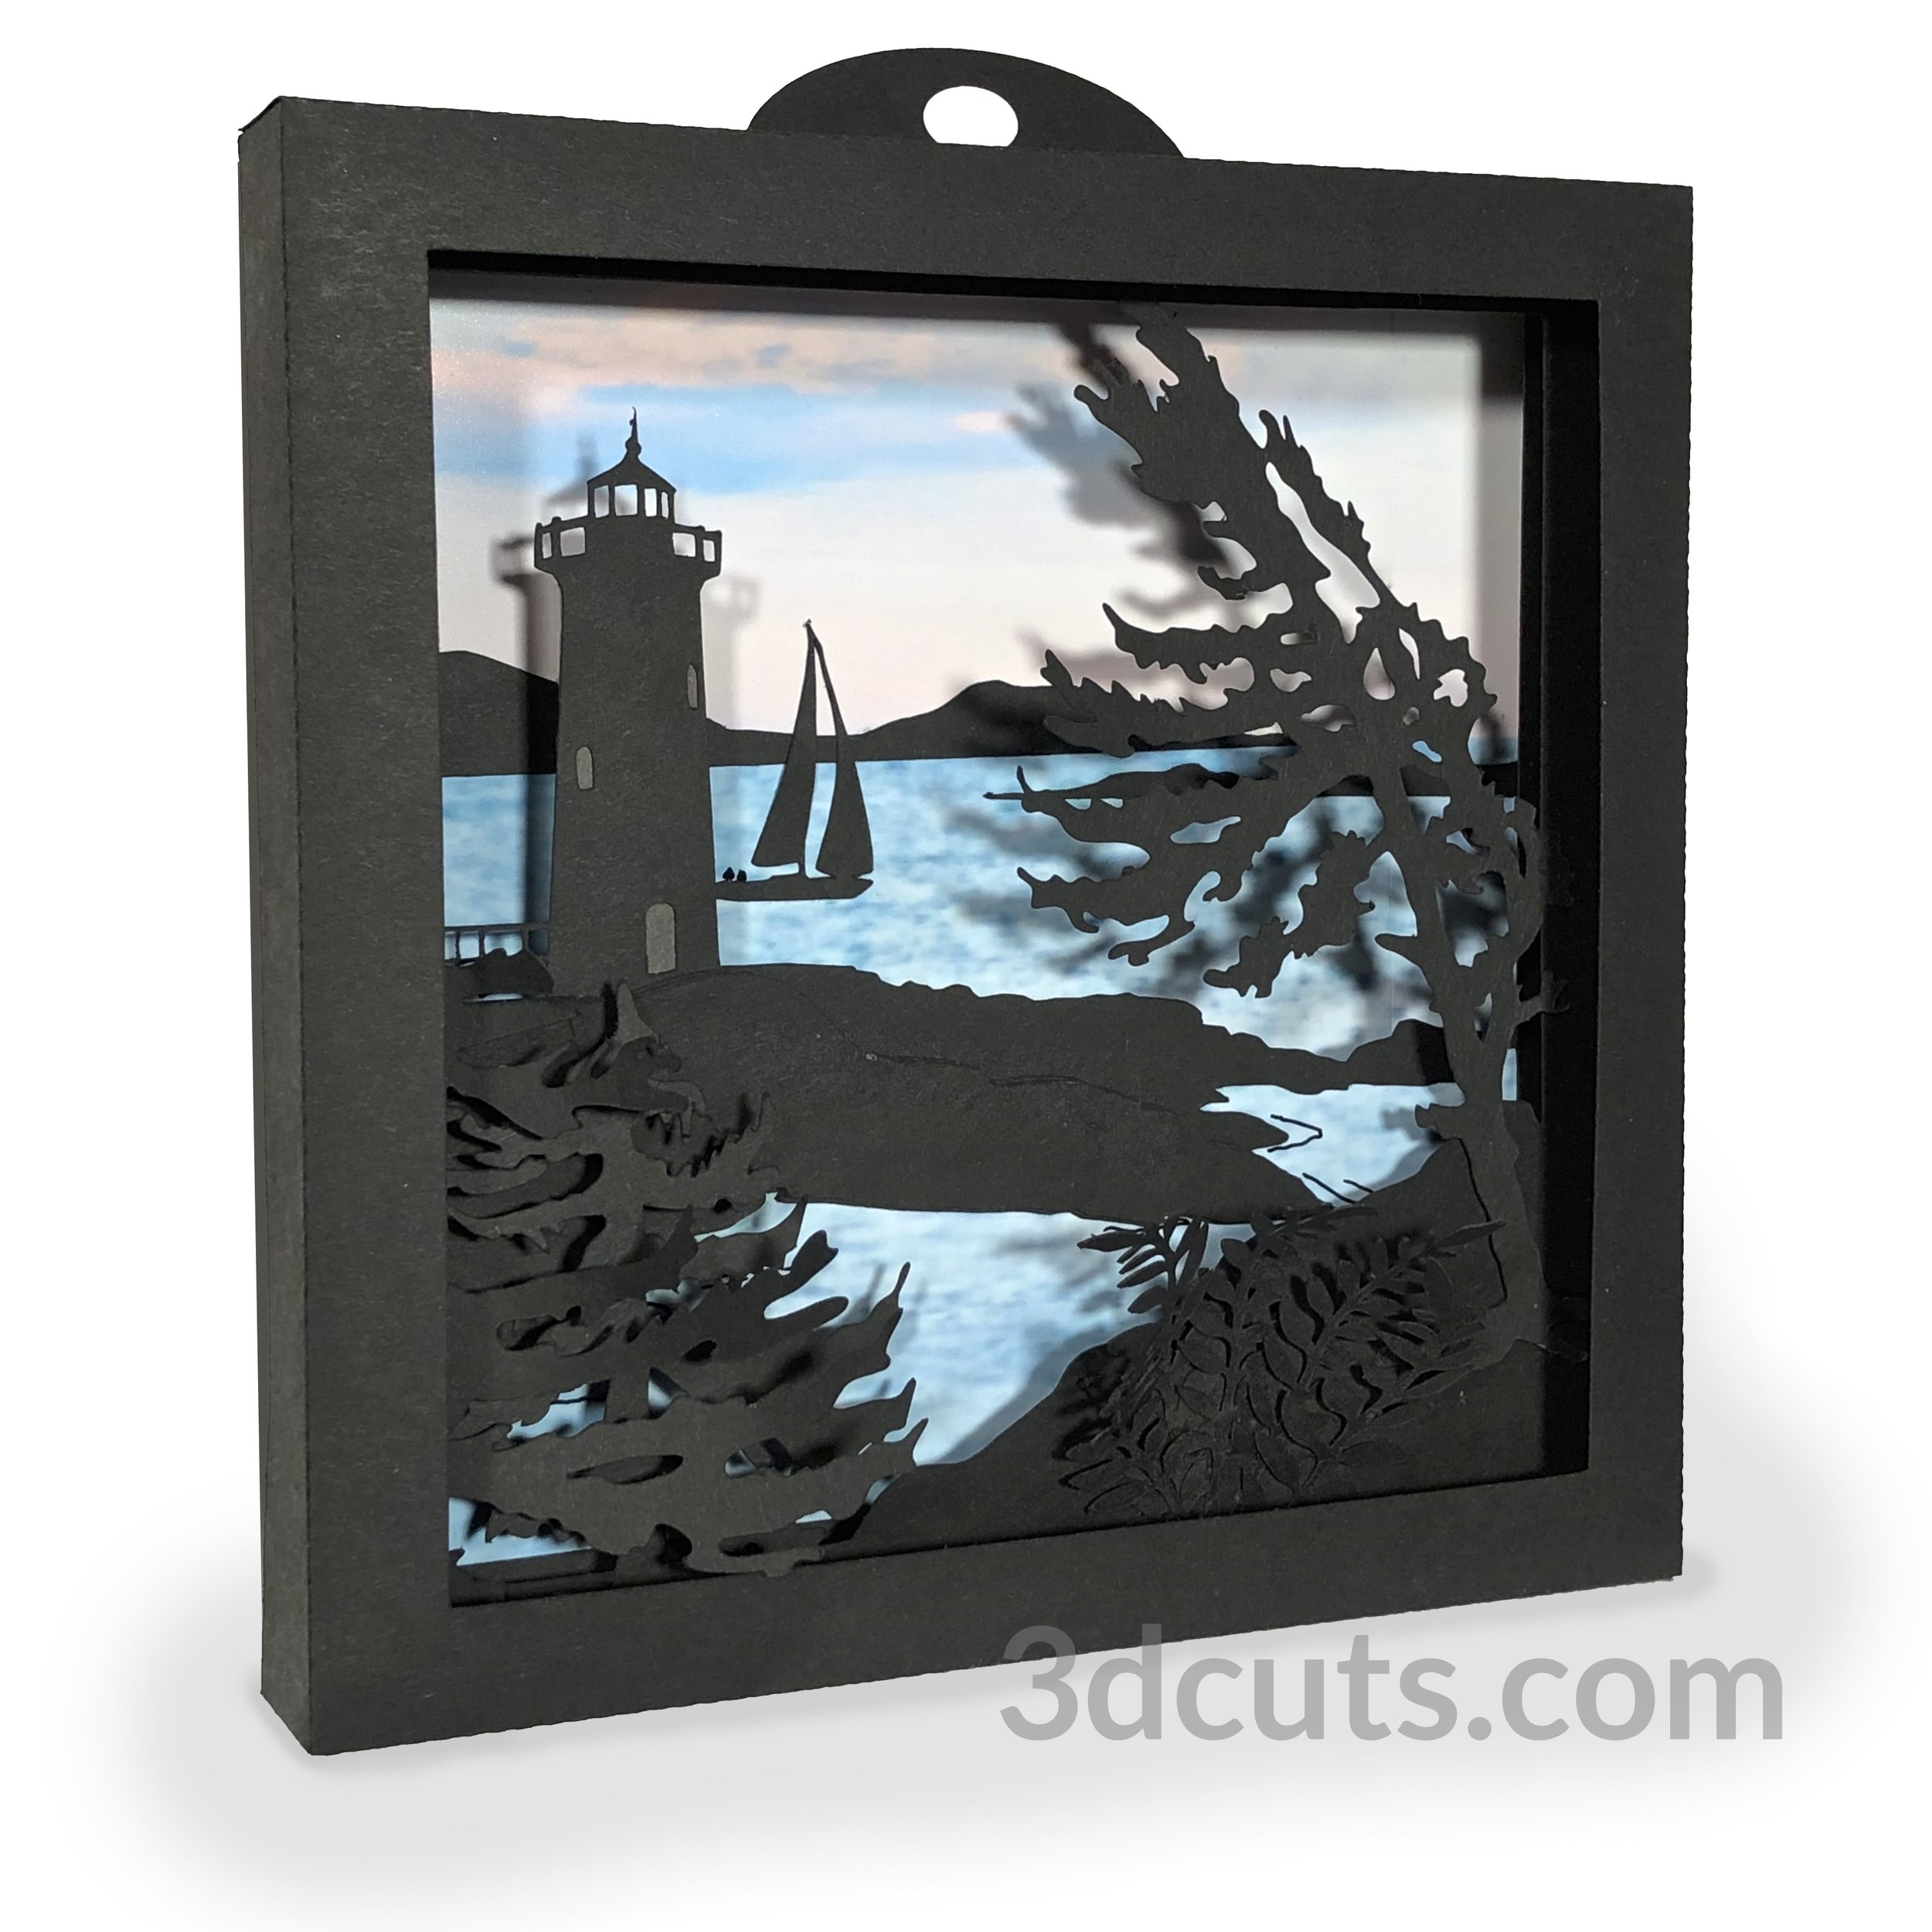 Lighthouse Shadow Box by 3dCuts.com, by Marji Roy, Cutting files in .svg, .dxf, png and .pdf formats for use with Silhouette, Cricut and Brother cutting machines, paper crafting files, SVG Files